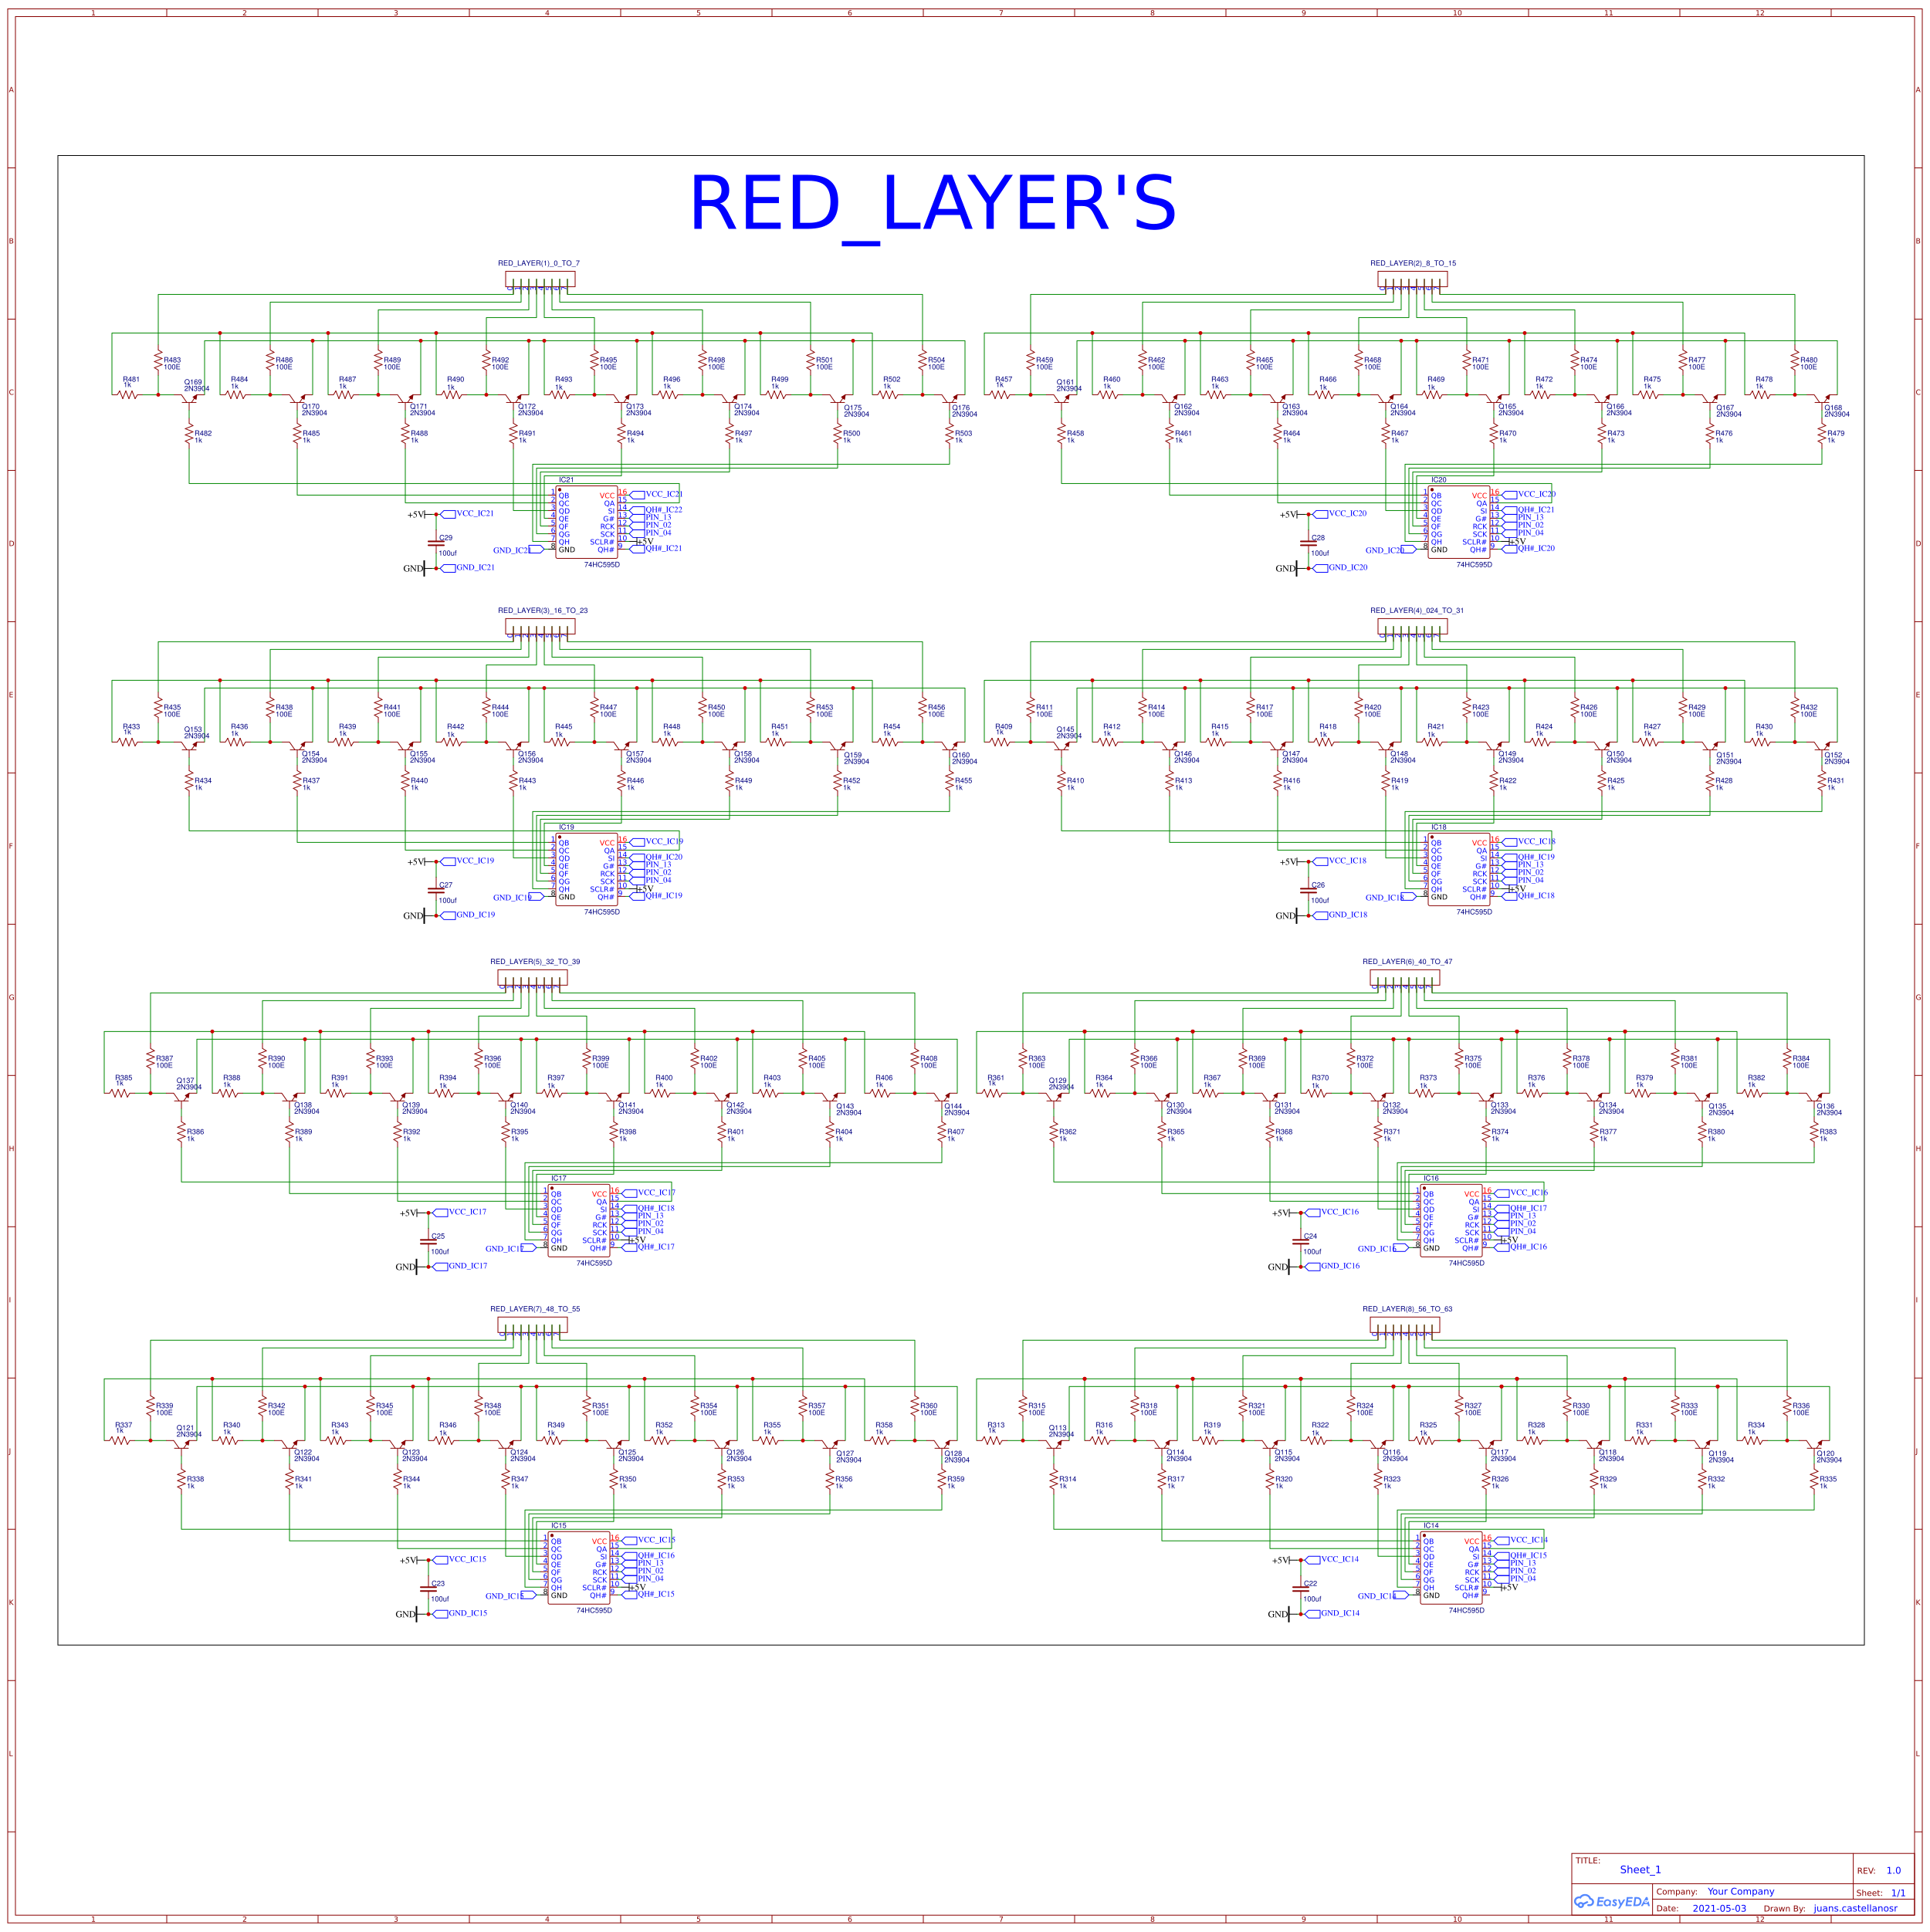 RED_LAYER'S